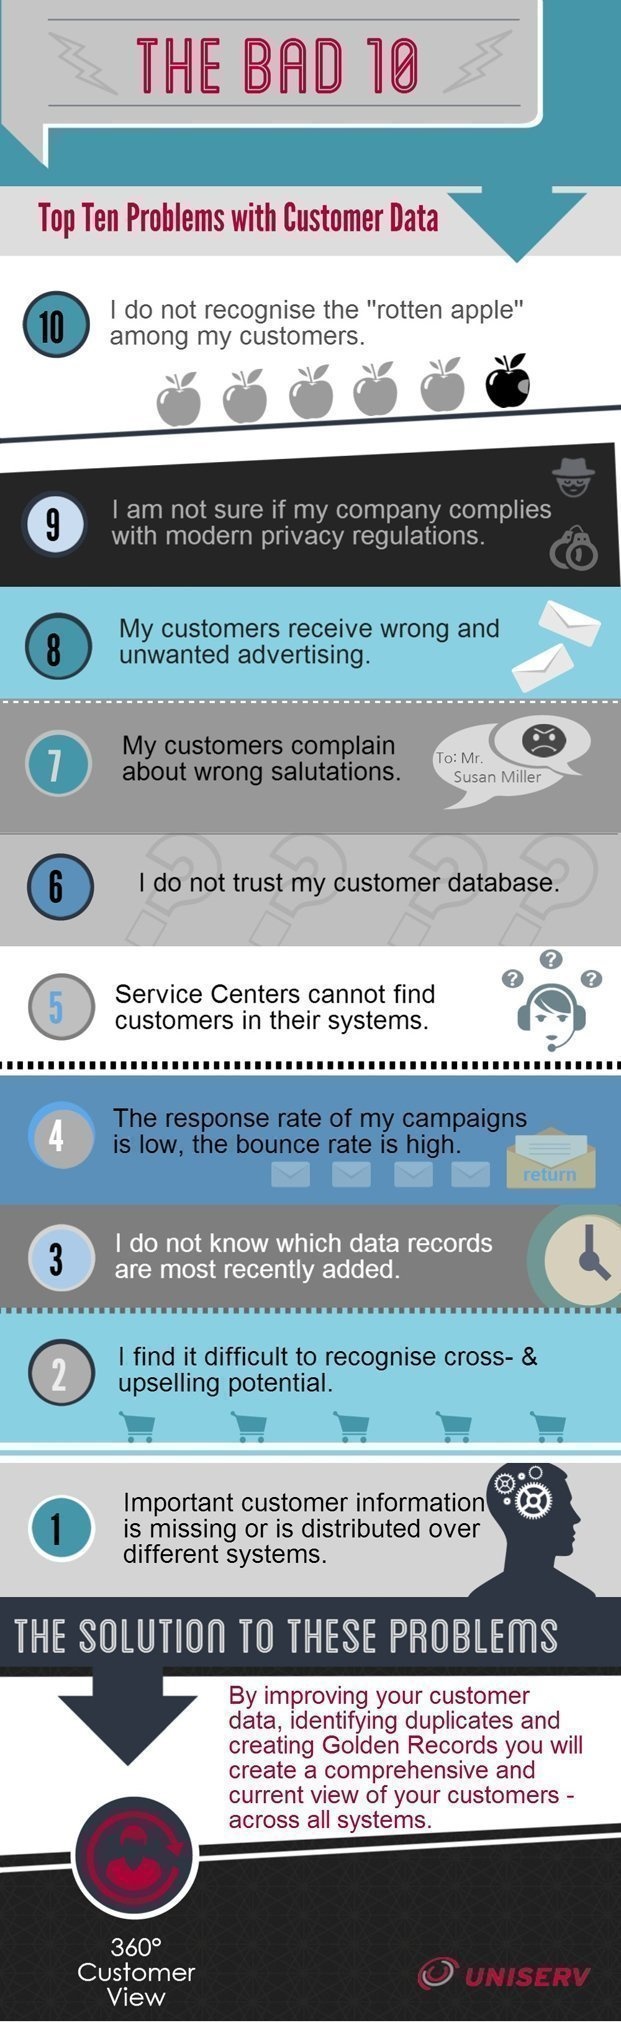 Top Ten Problems with Customer Data